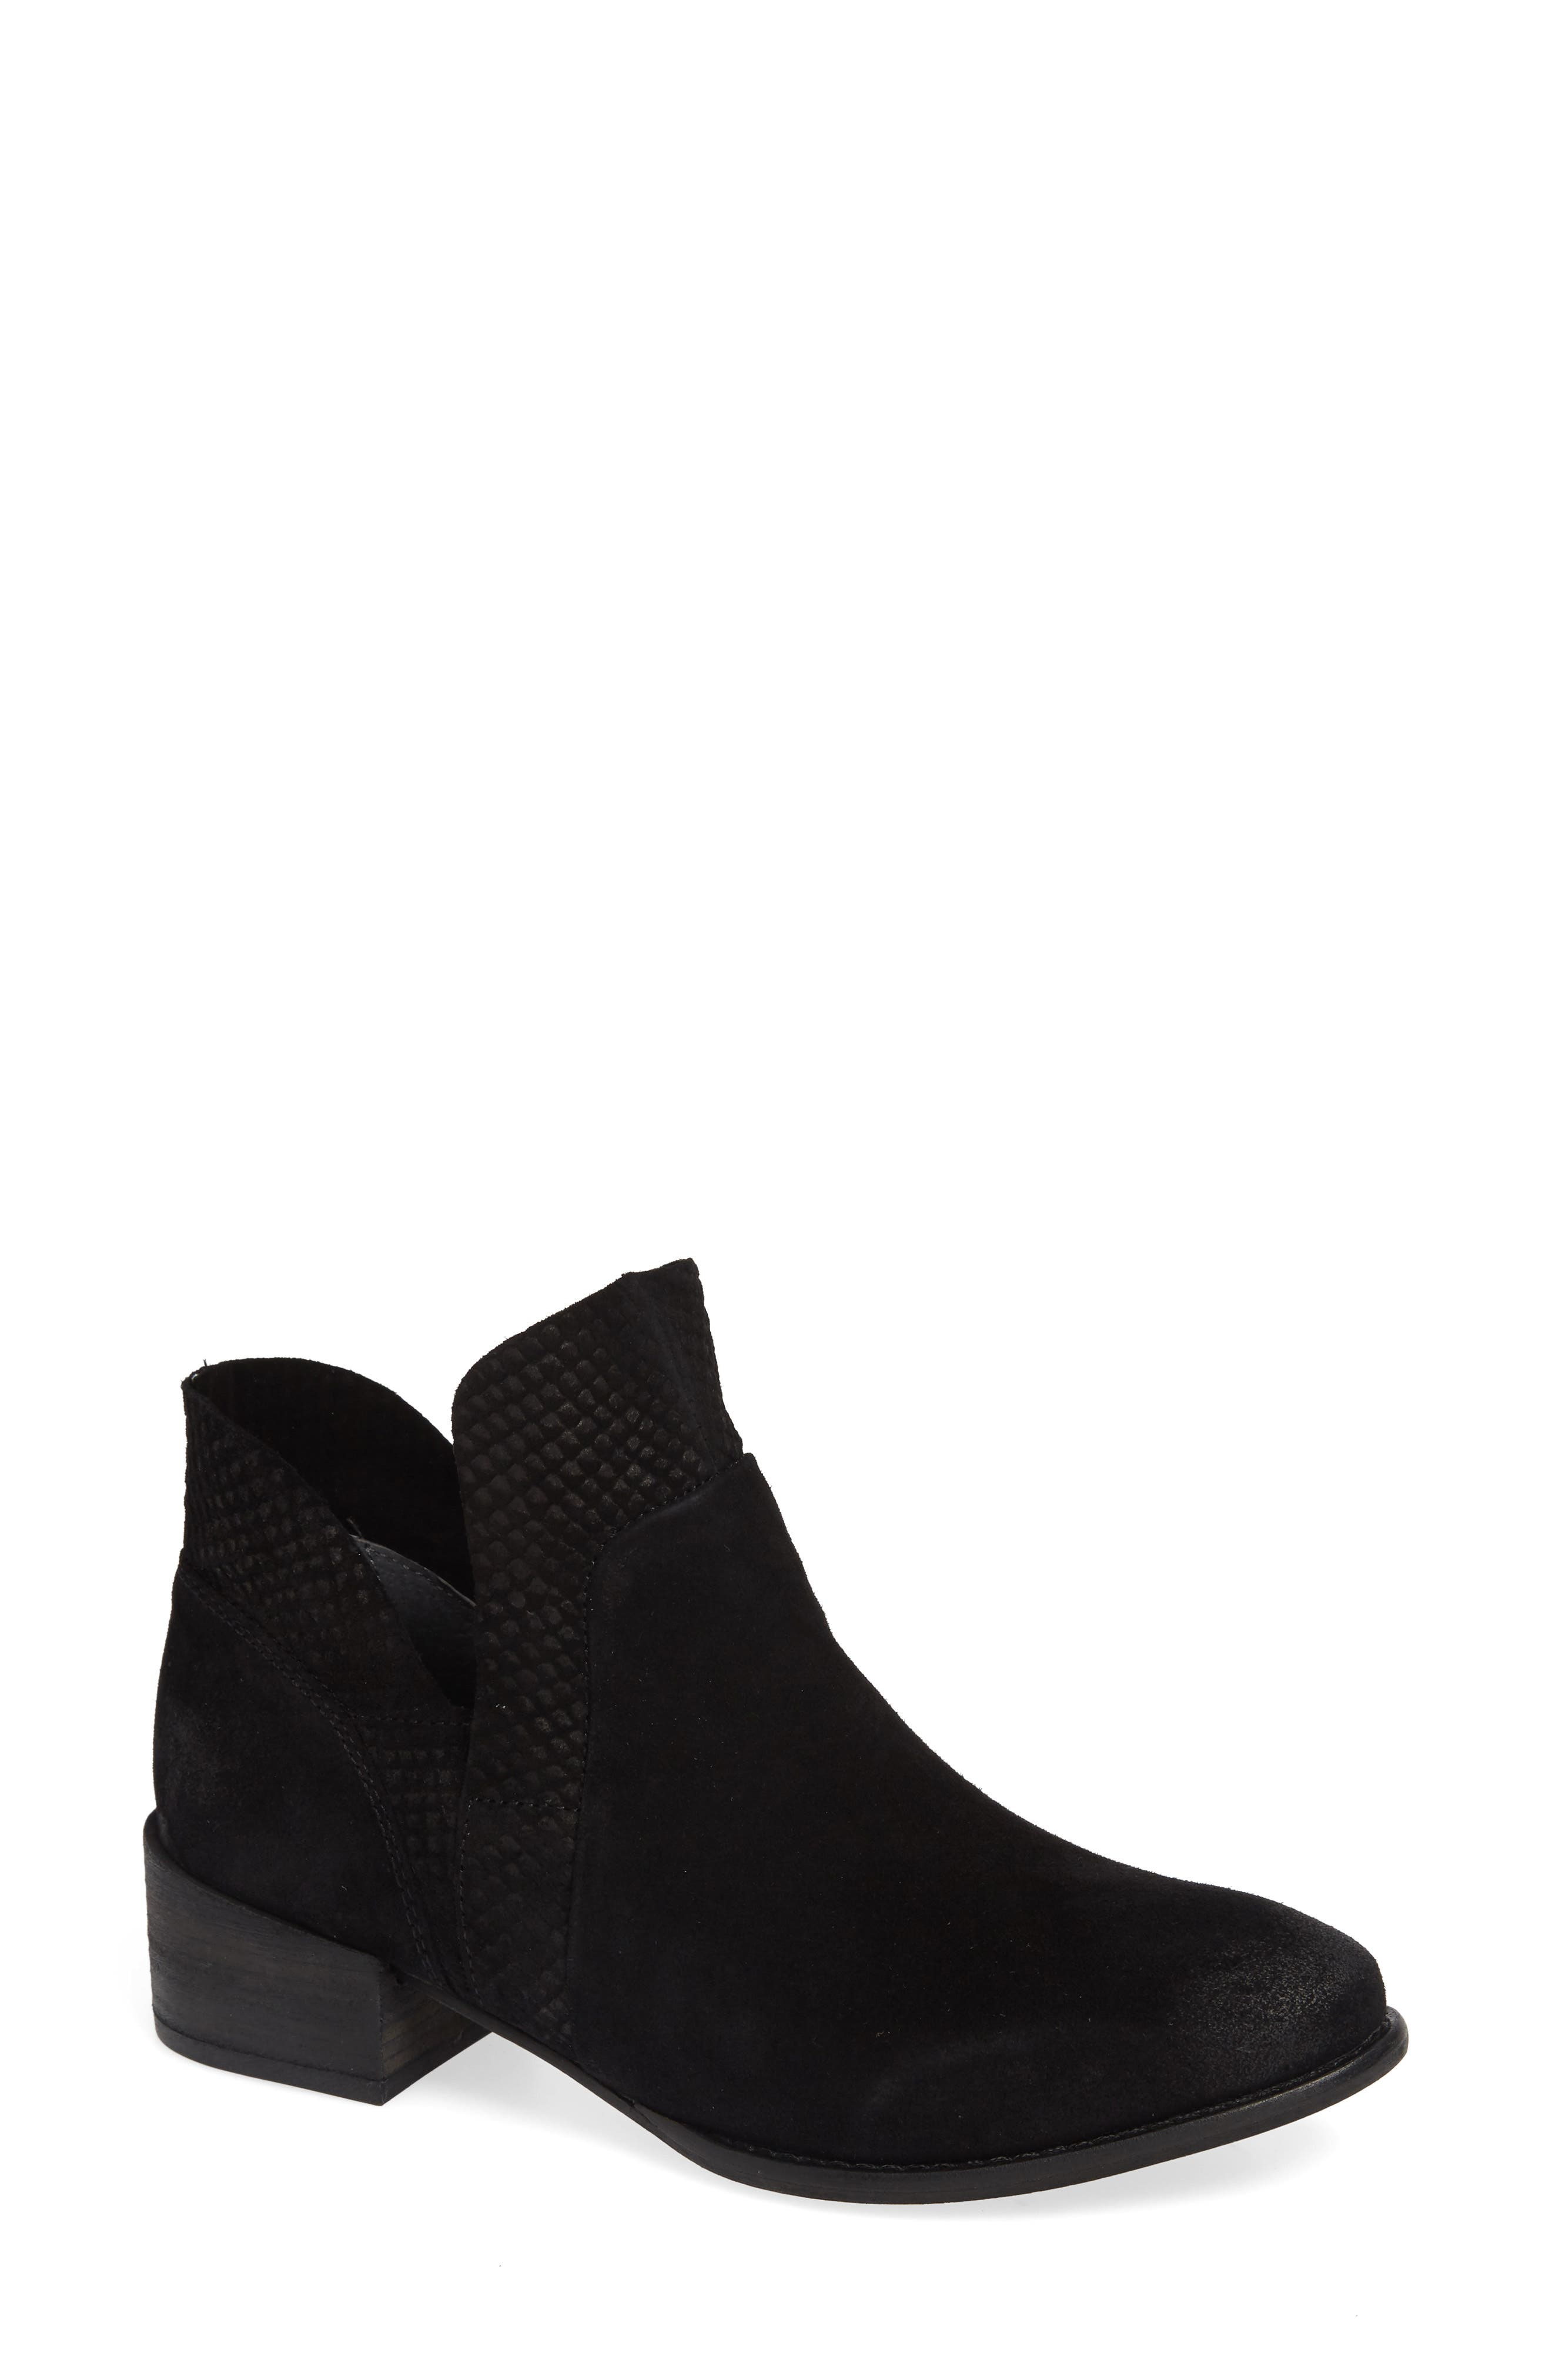 Score Bootie,                             Main thumbnail 1, color,                             BLACK SUEDE